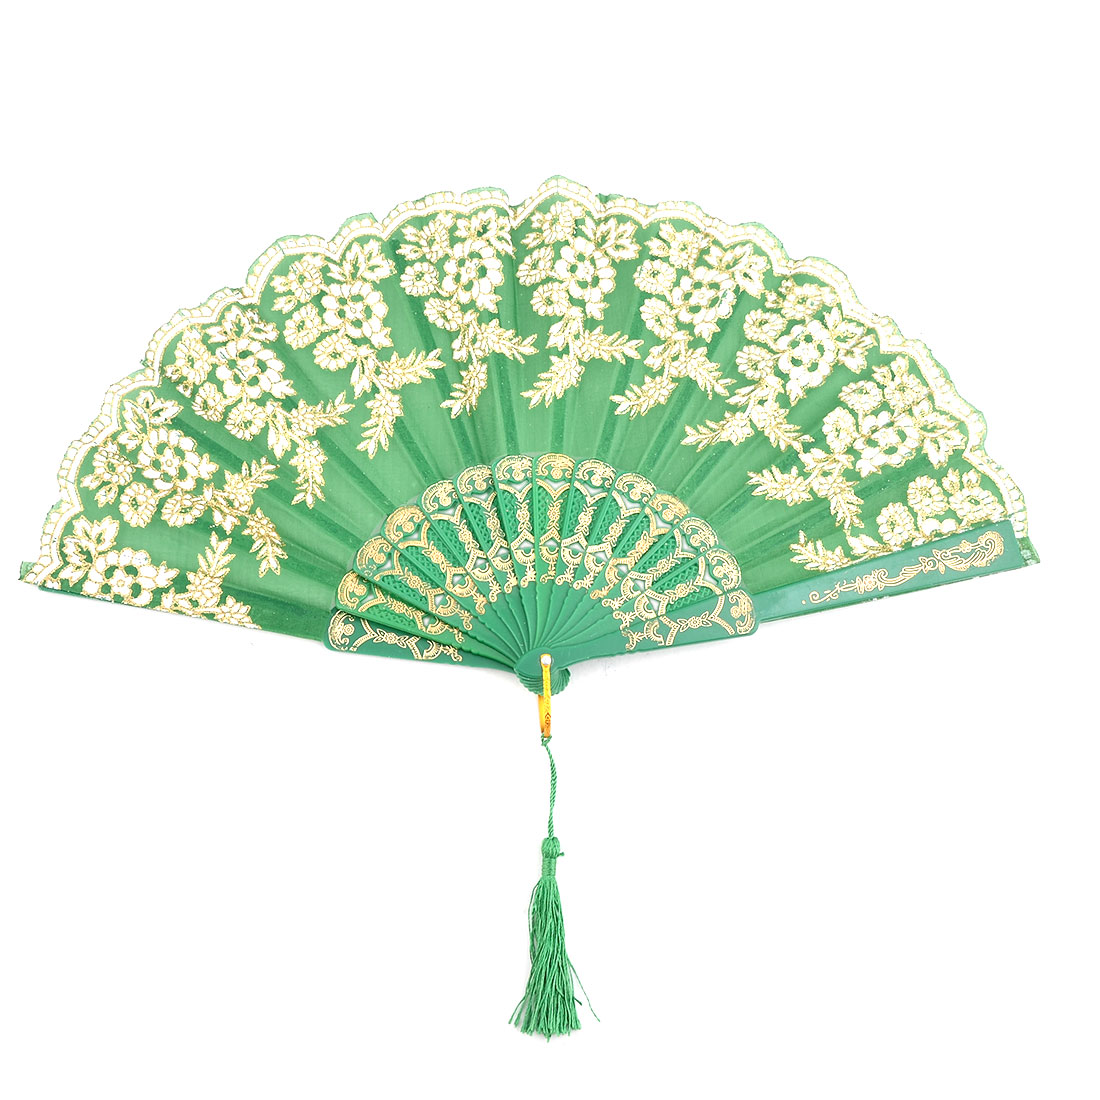 Home Plastic Frame Floral Pattern Folding Dancing Cooling Hand Fan Green 23cm Length